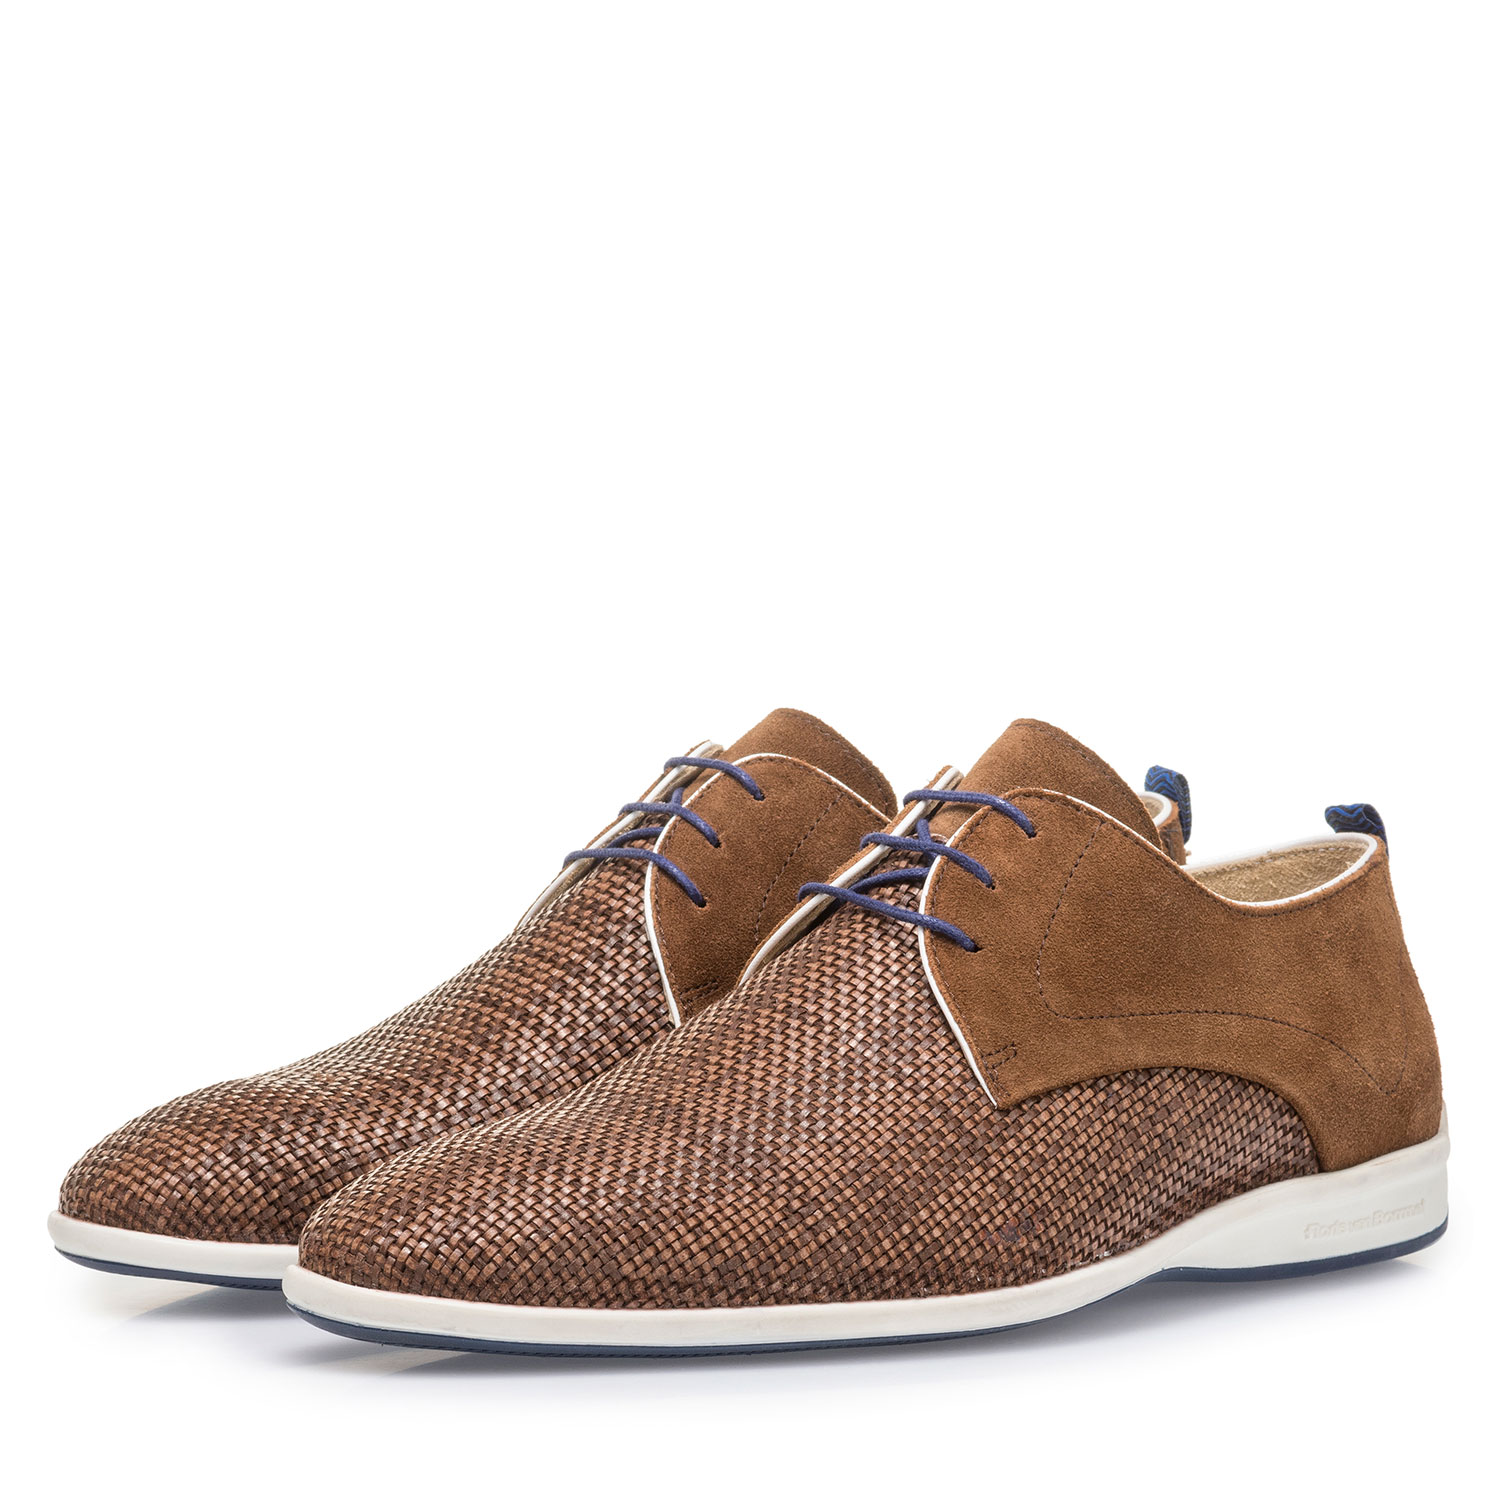 18302/10 - Brown braided leather lace shoe